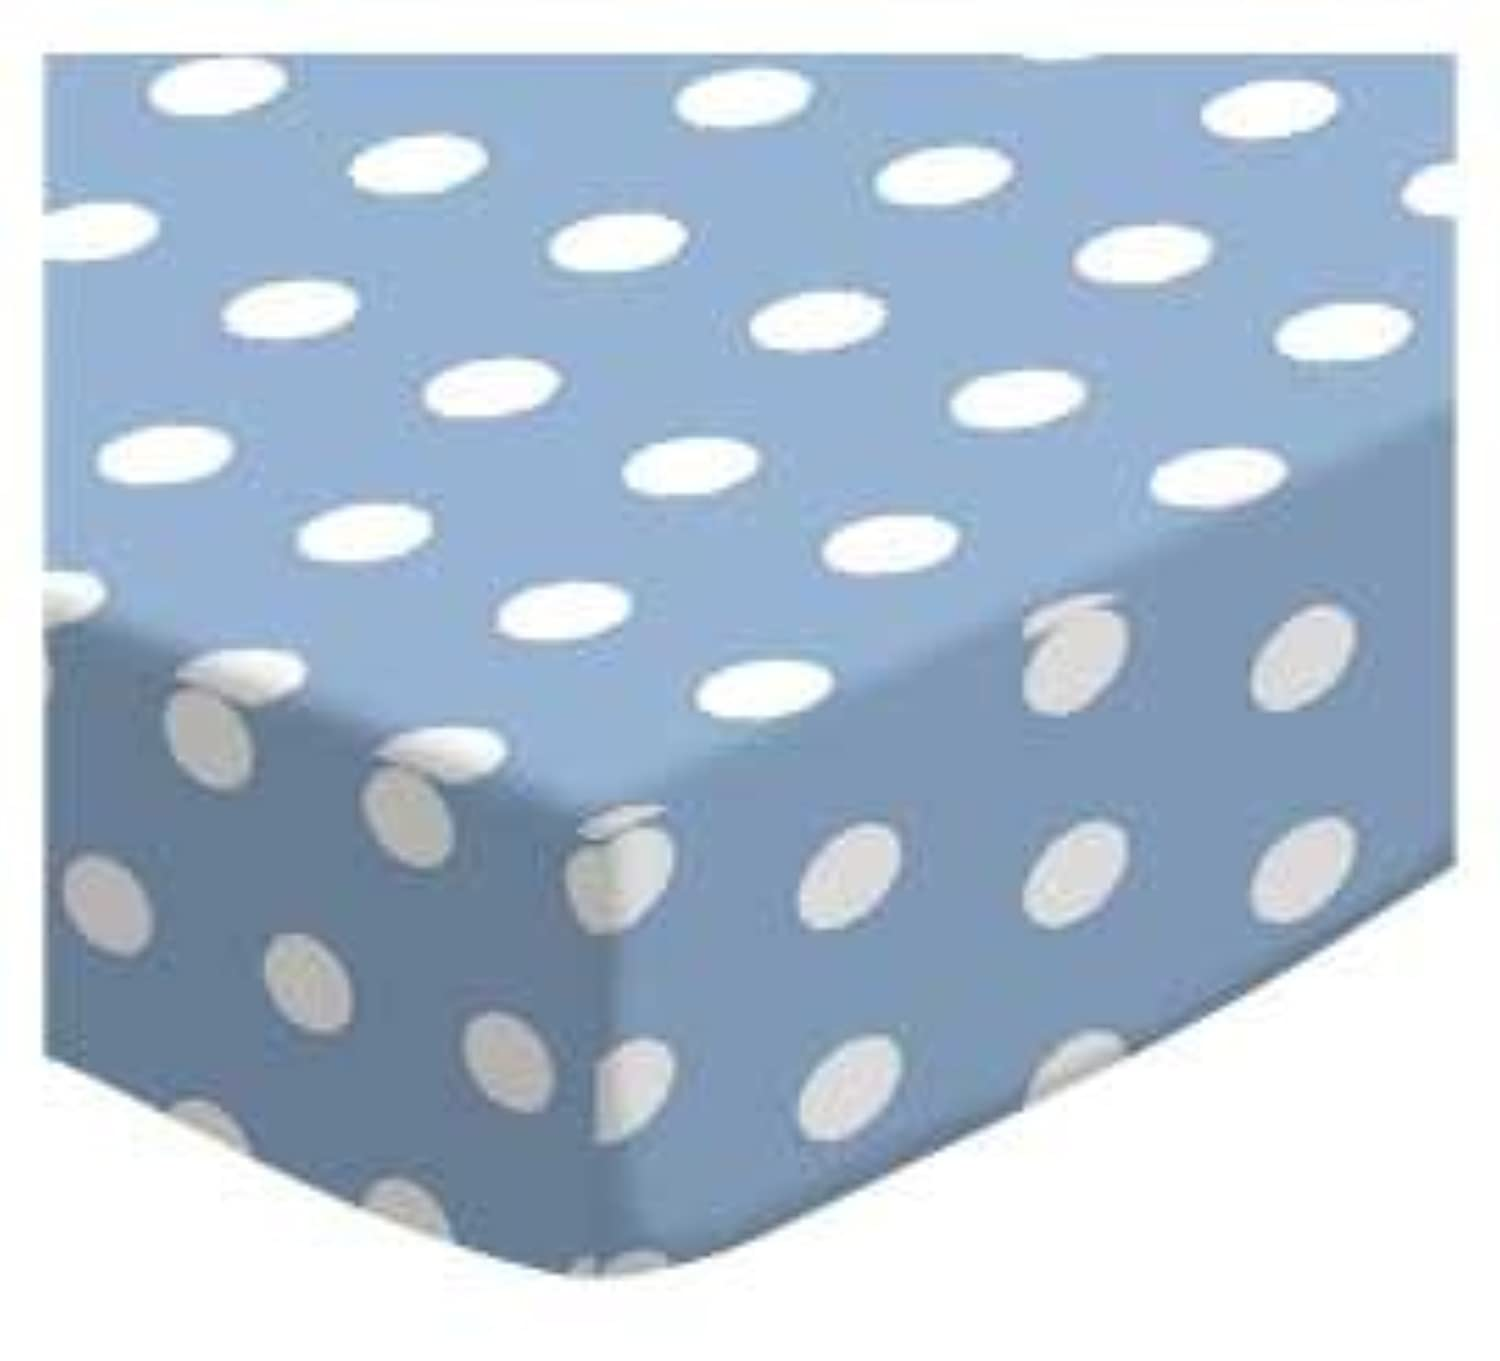 SheetWorld Fitted Square Playard Sheet 37.5 x 37.5 (Fits Joovy) - Polka Dots Blue - Made In USA by sheetworld